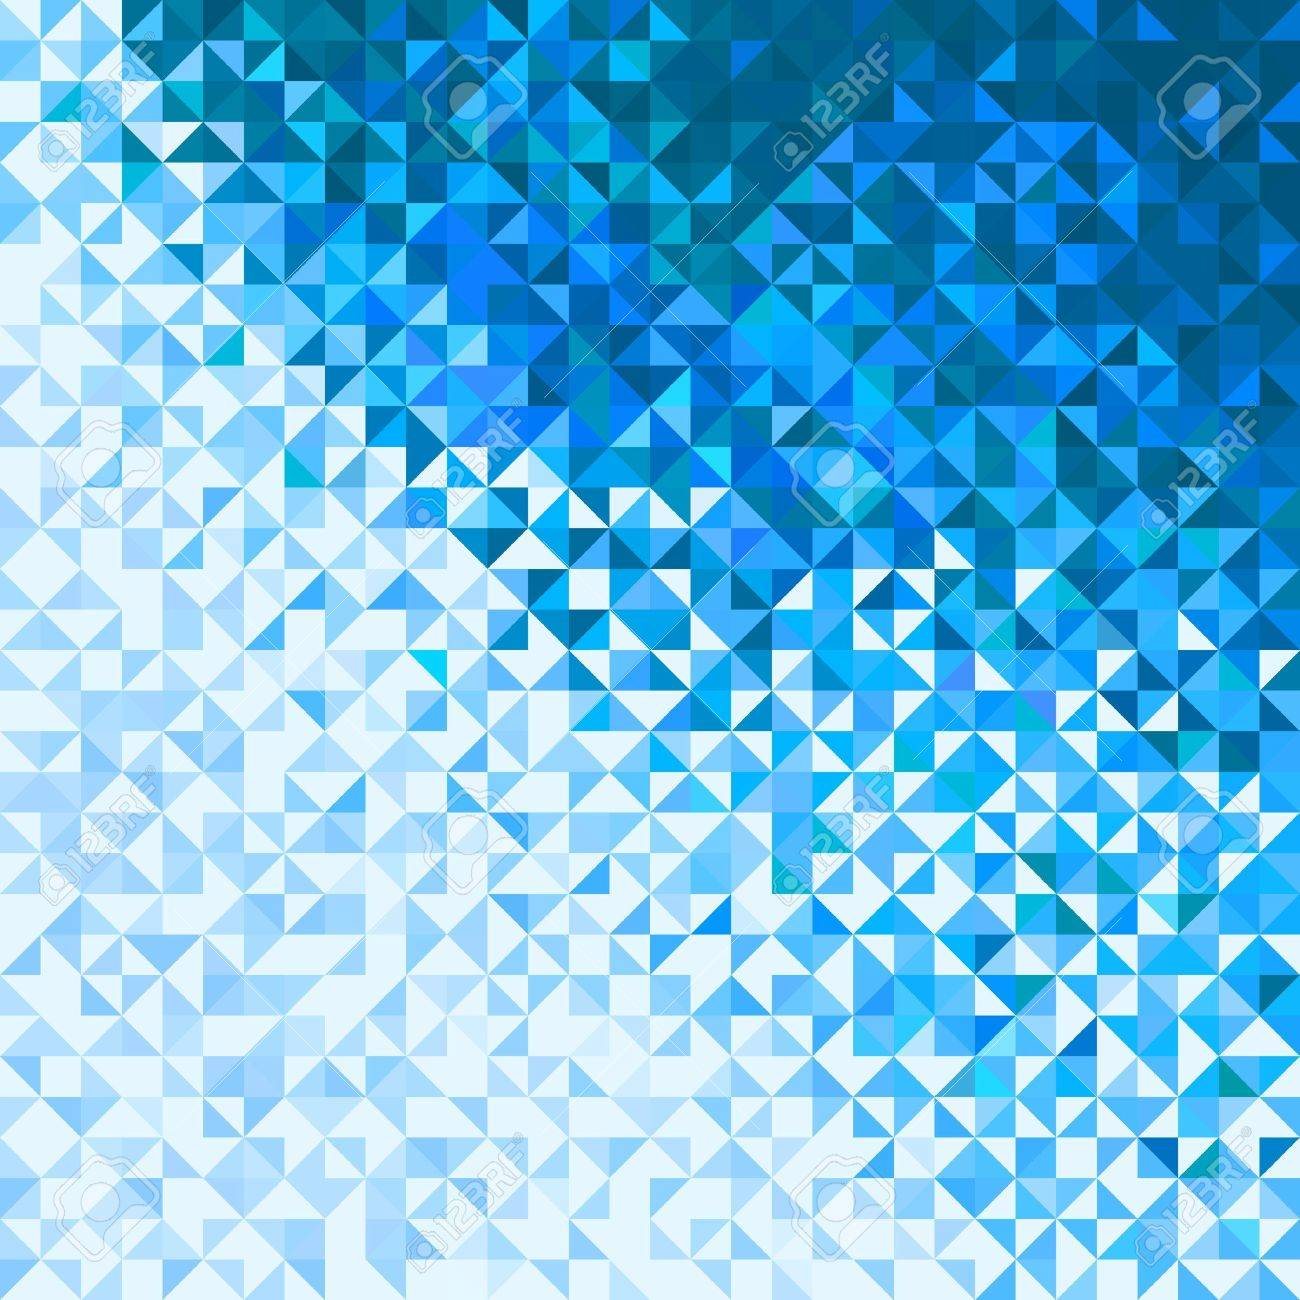 abstract lights blue white winter sky or snow background pixel